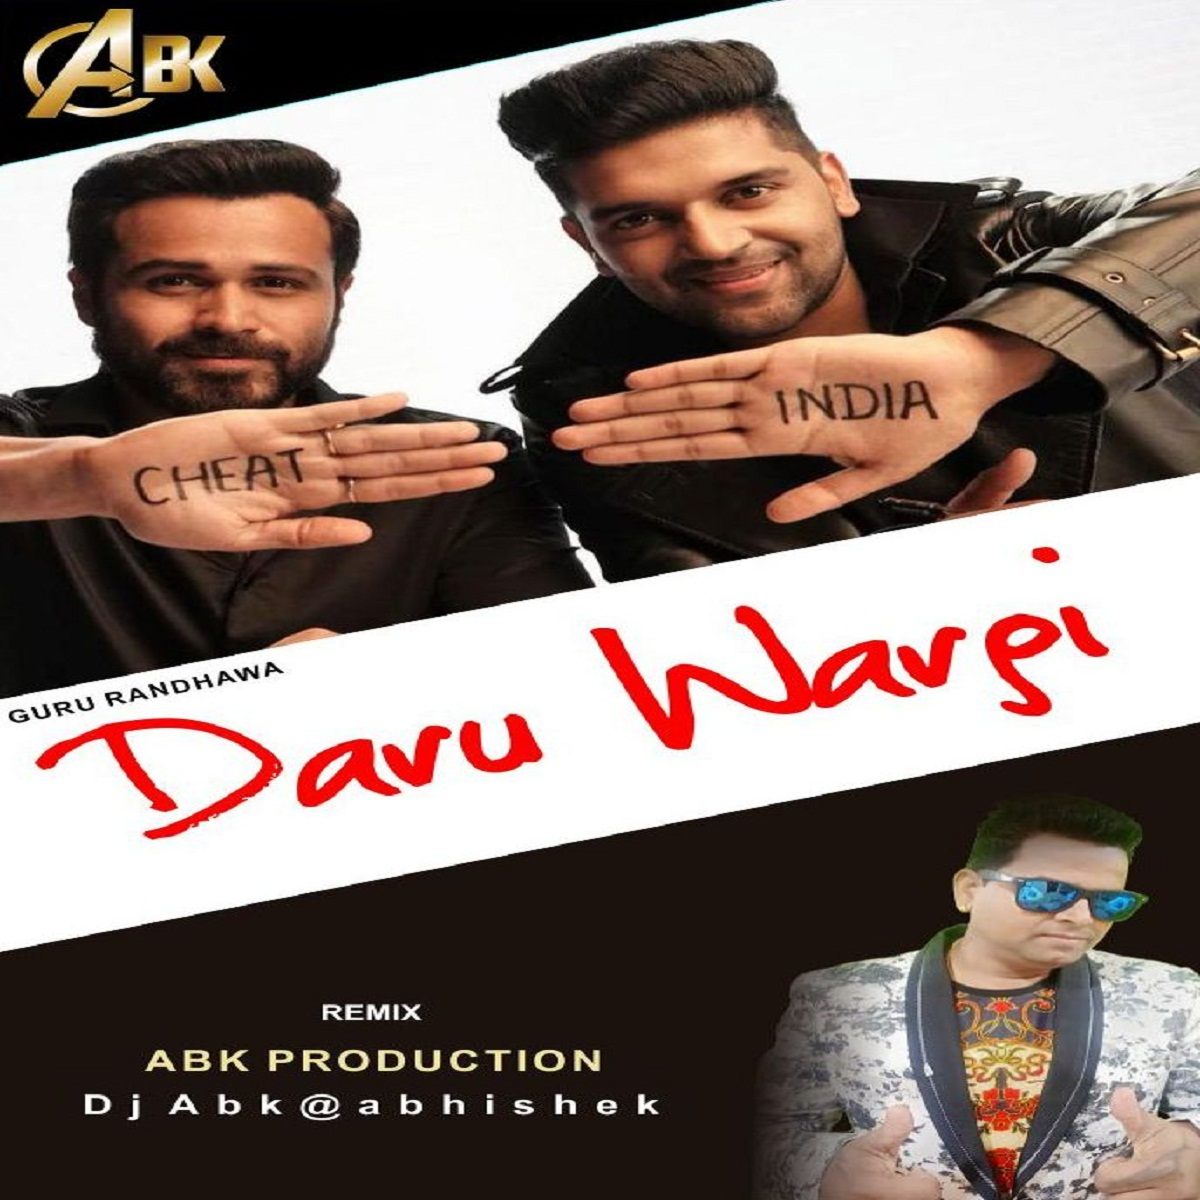 Daaru Wargi ( Guru Randhawa ) Abk Production Remix